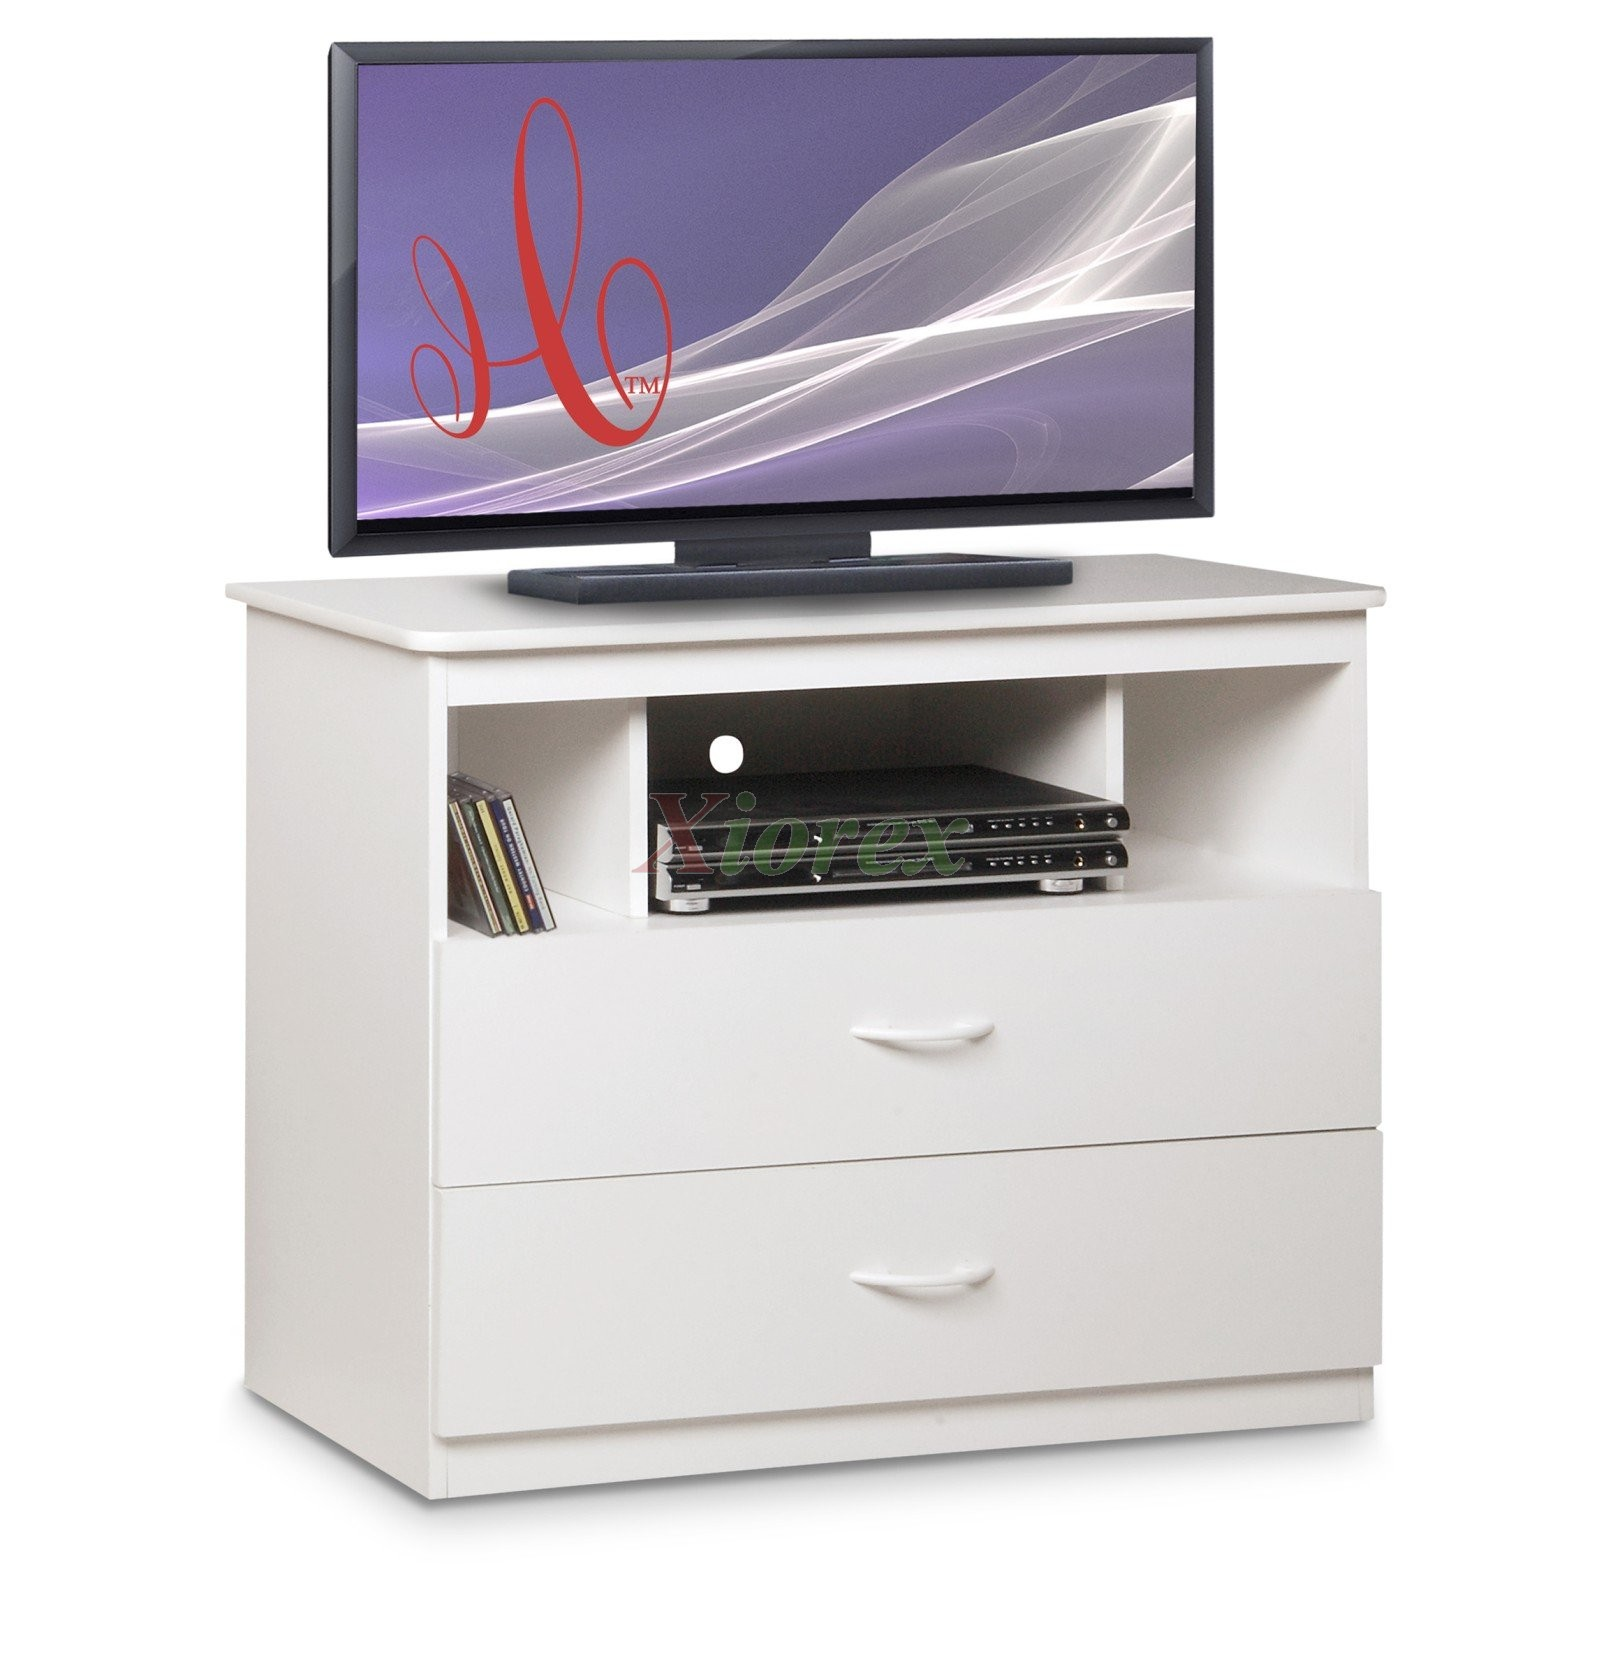 s with mystic drawers getimage avalon chest com hayneedle cay furniture shop online media way url your